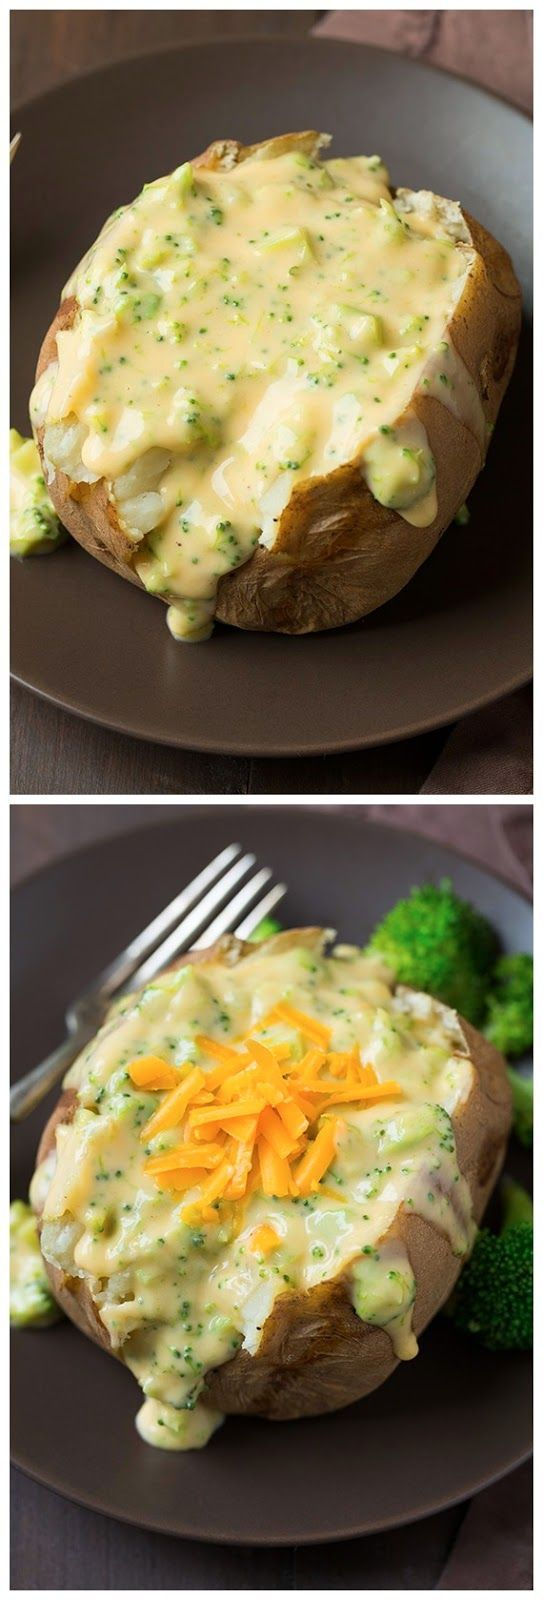 Baked Potatoes with Broccoli Cheese Sauce   Ingredients   3      medium Russet potatoes, scrubbed and rinsed  2      Tbsp butter, diced i...